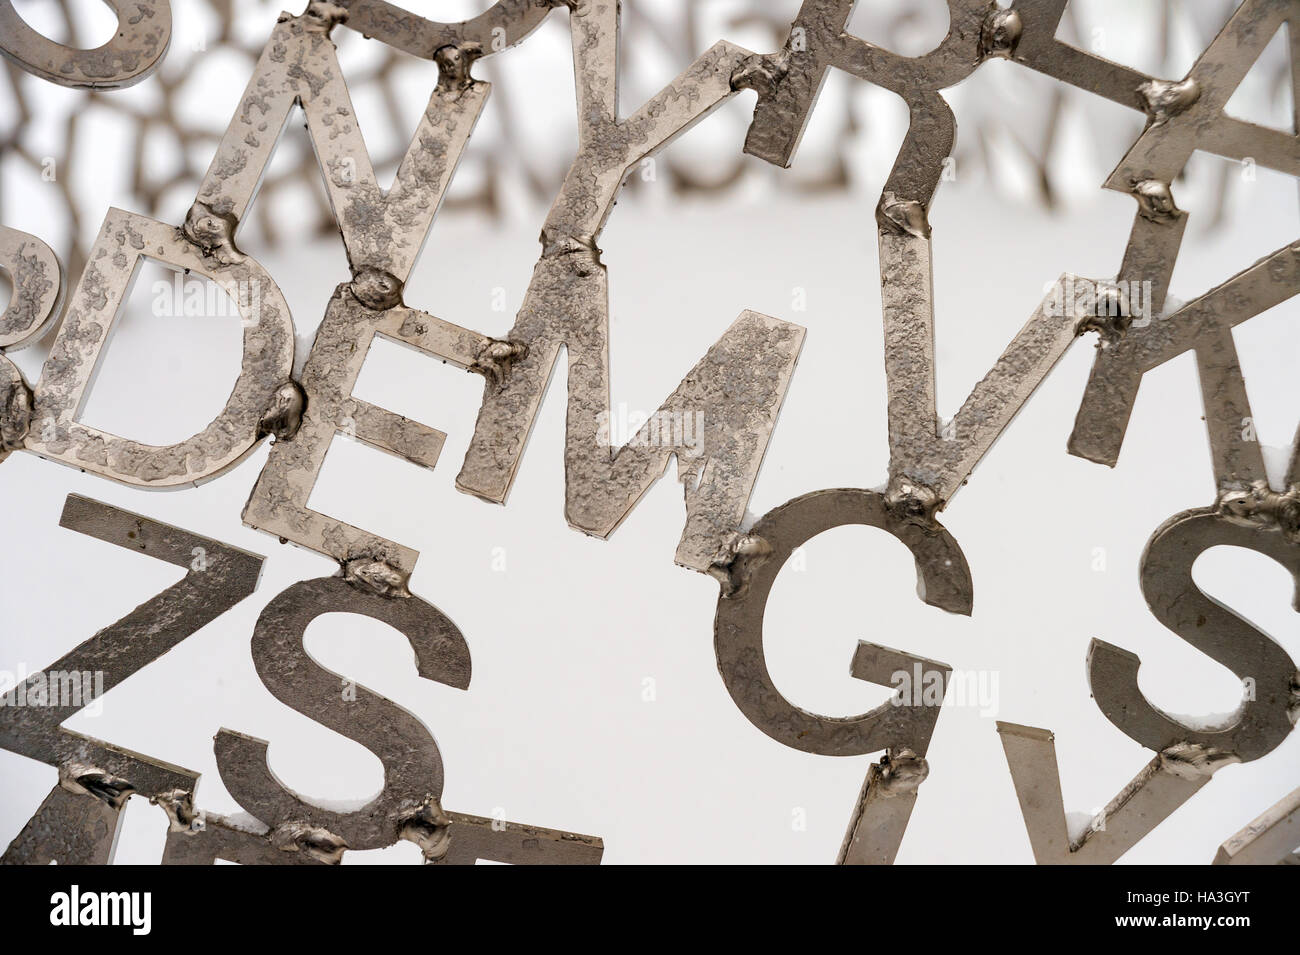 Detail of Jaume Plensa sculpture 'Shadows II' showing stainless steel letters, Montreal Museum of Fine Arts, - Stock Image